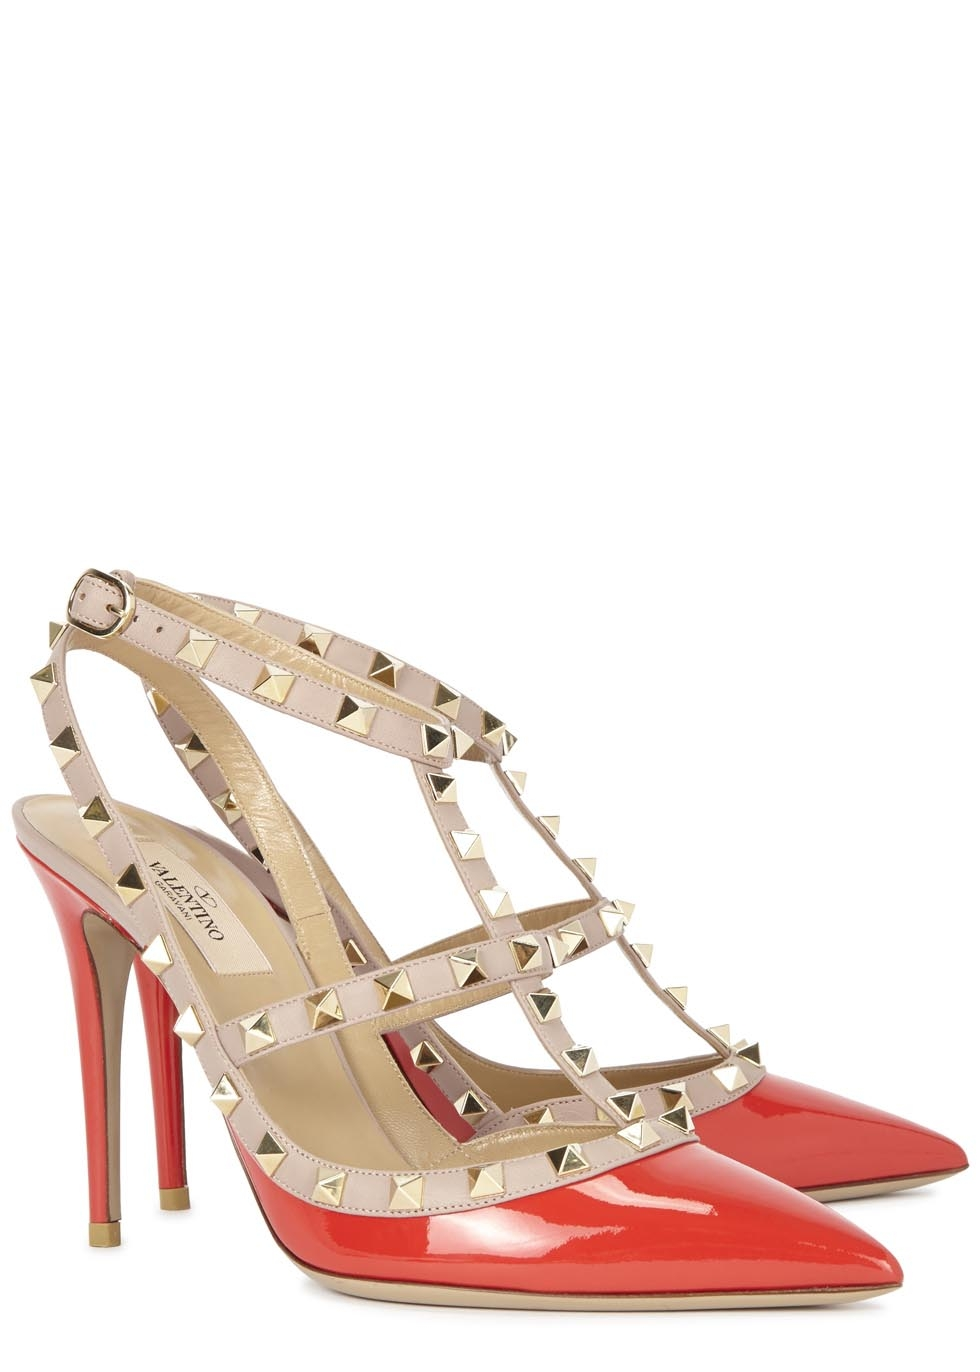 For her - Valentino patent Rockstud pumps, £615